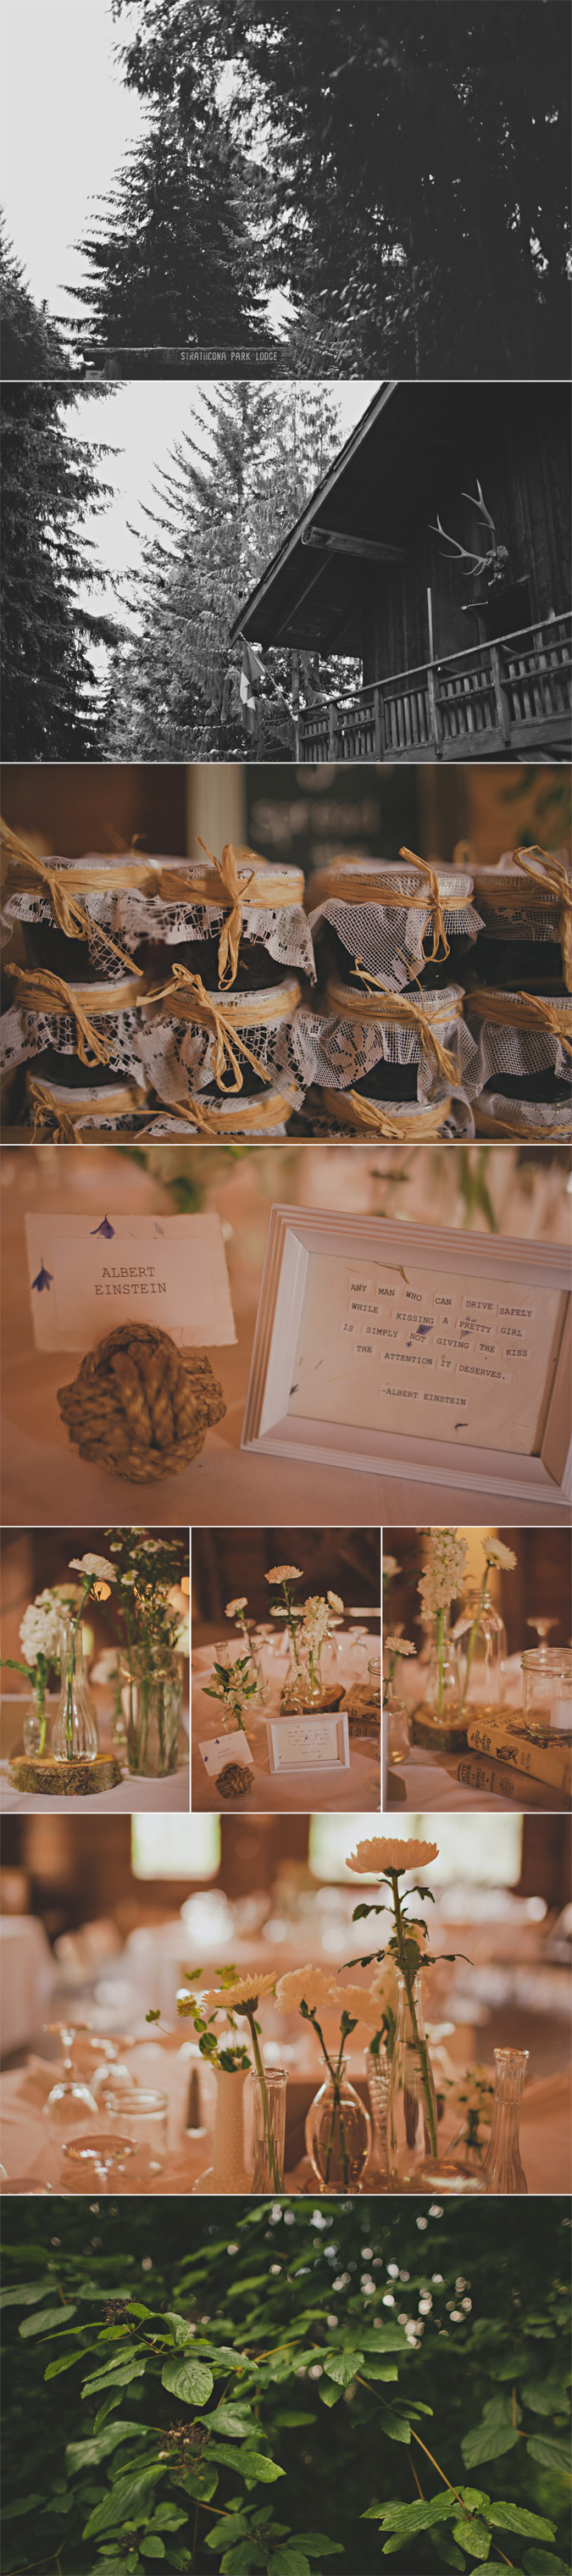 details from a wedding at strathcona park lodge, vancouver island, bc